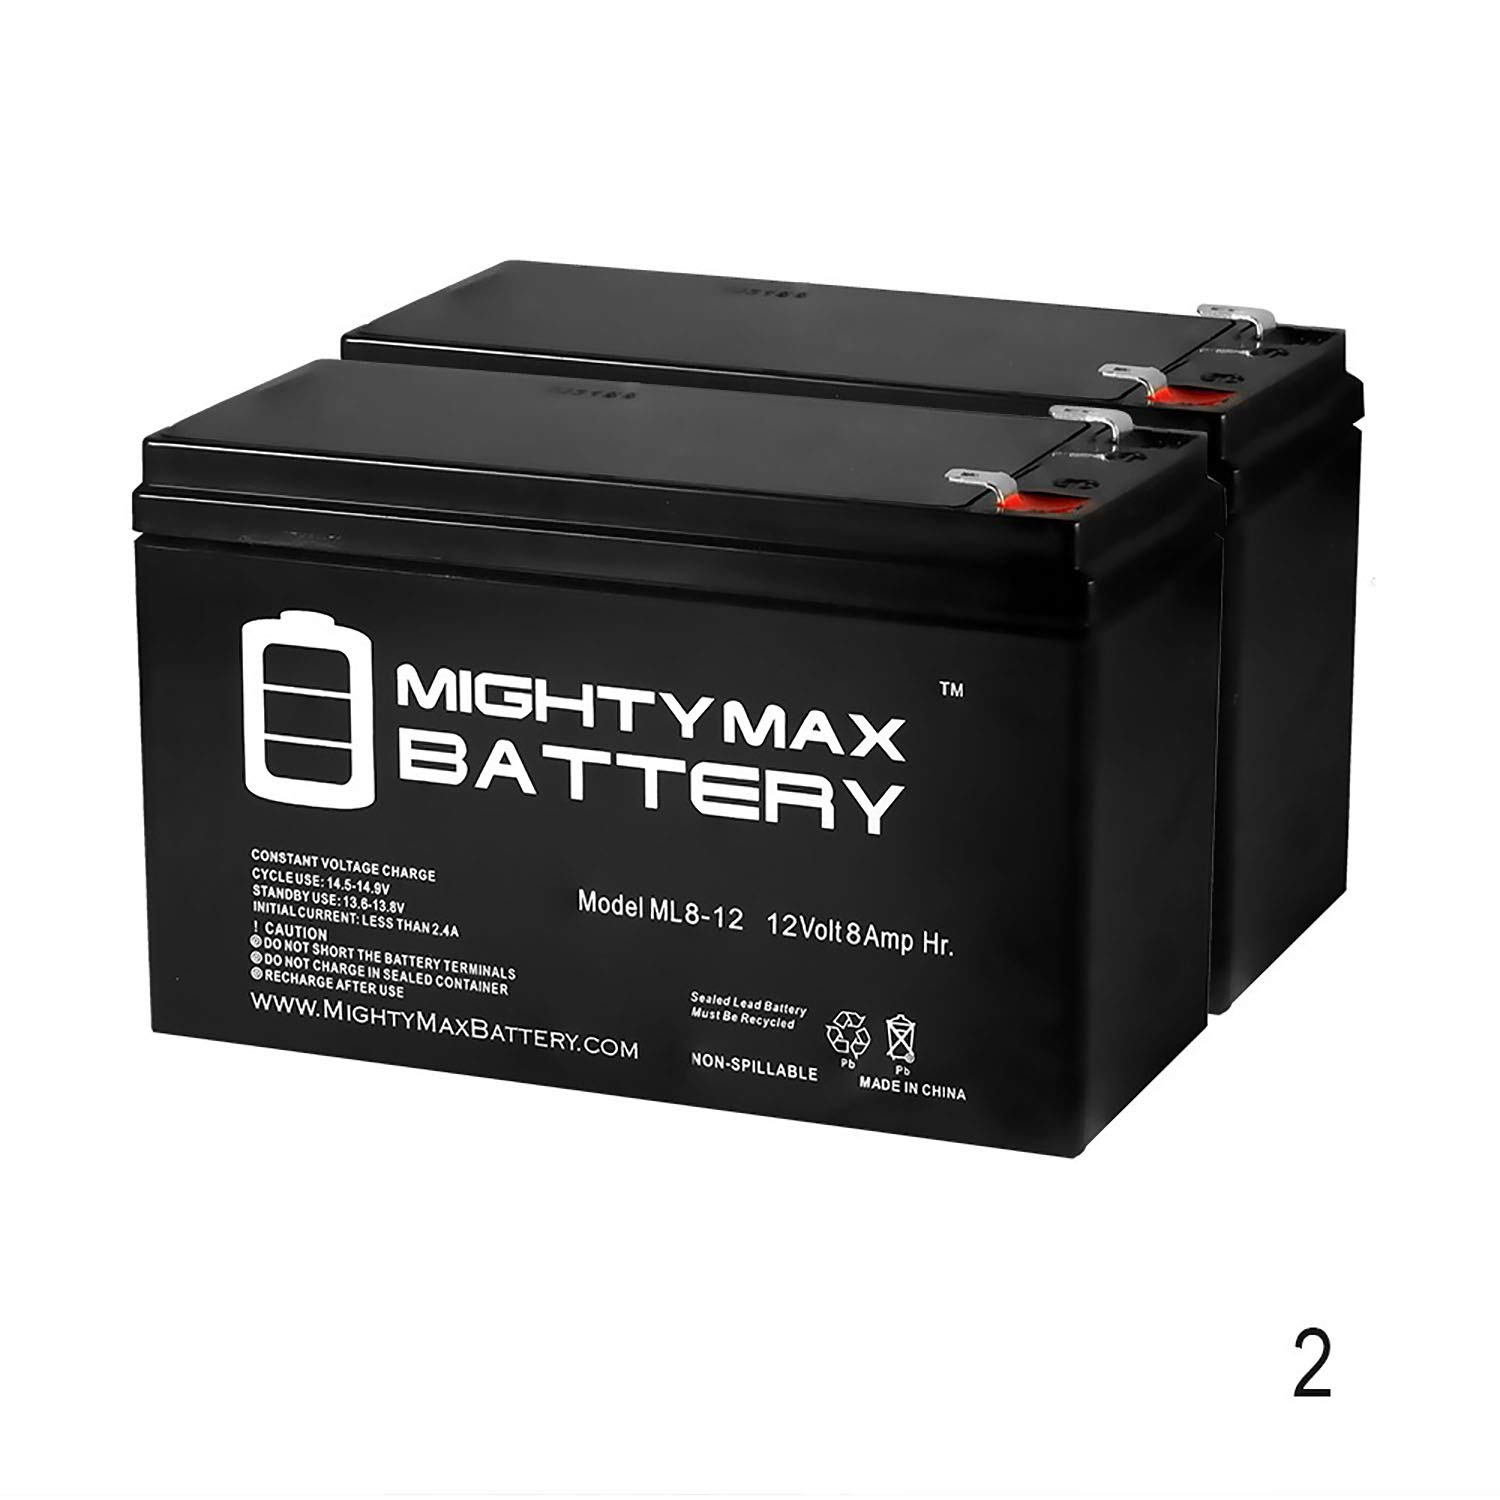 Mighty Max Battery 12V 8Ah Battery for Razor MX350, MX400 Electric Dirt Bike - 2 Pack Brand Product